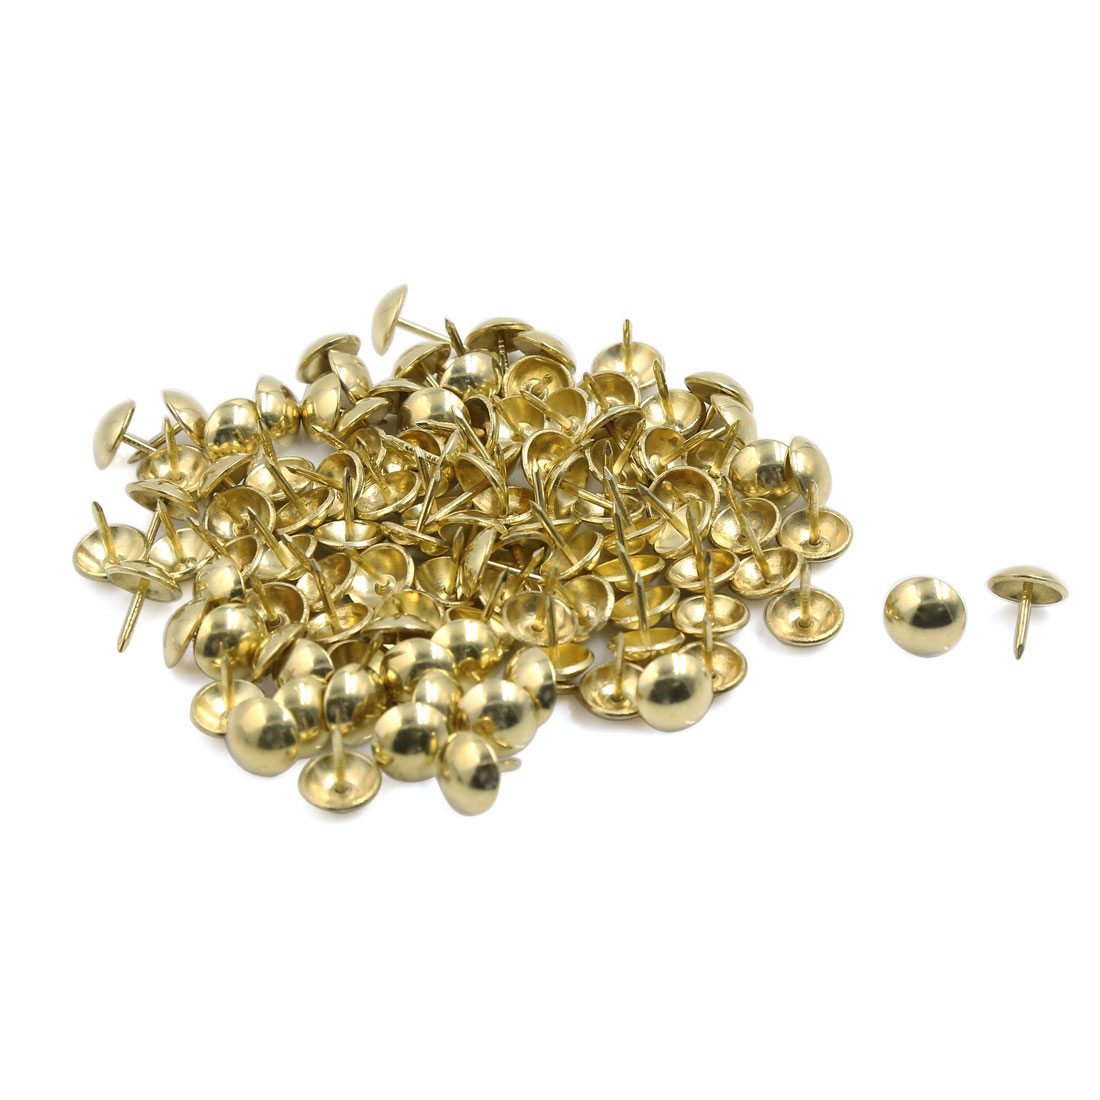 Corkboard Photo Steel Round Top Pushpin Thumb Tacks Gold Tone 11mm Dia 100pcs